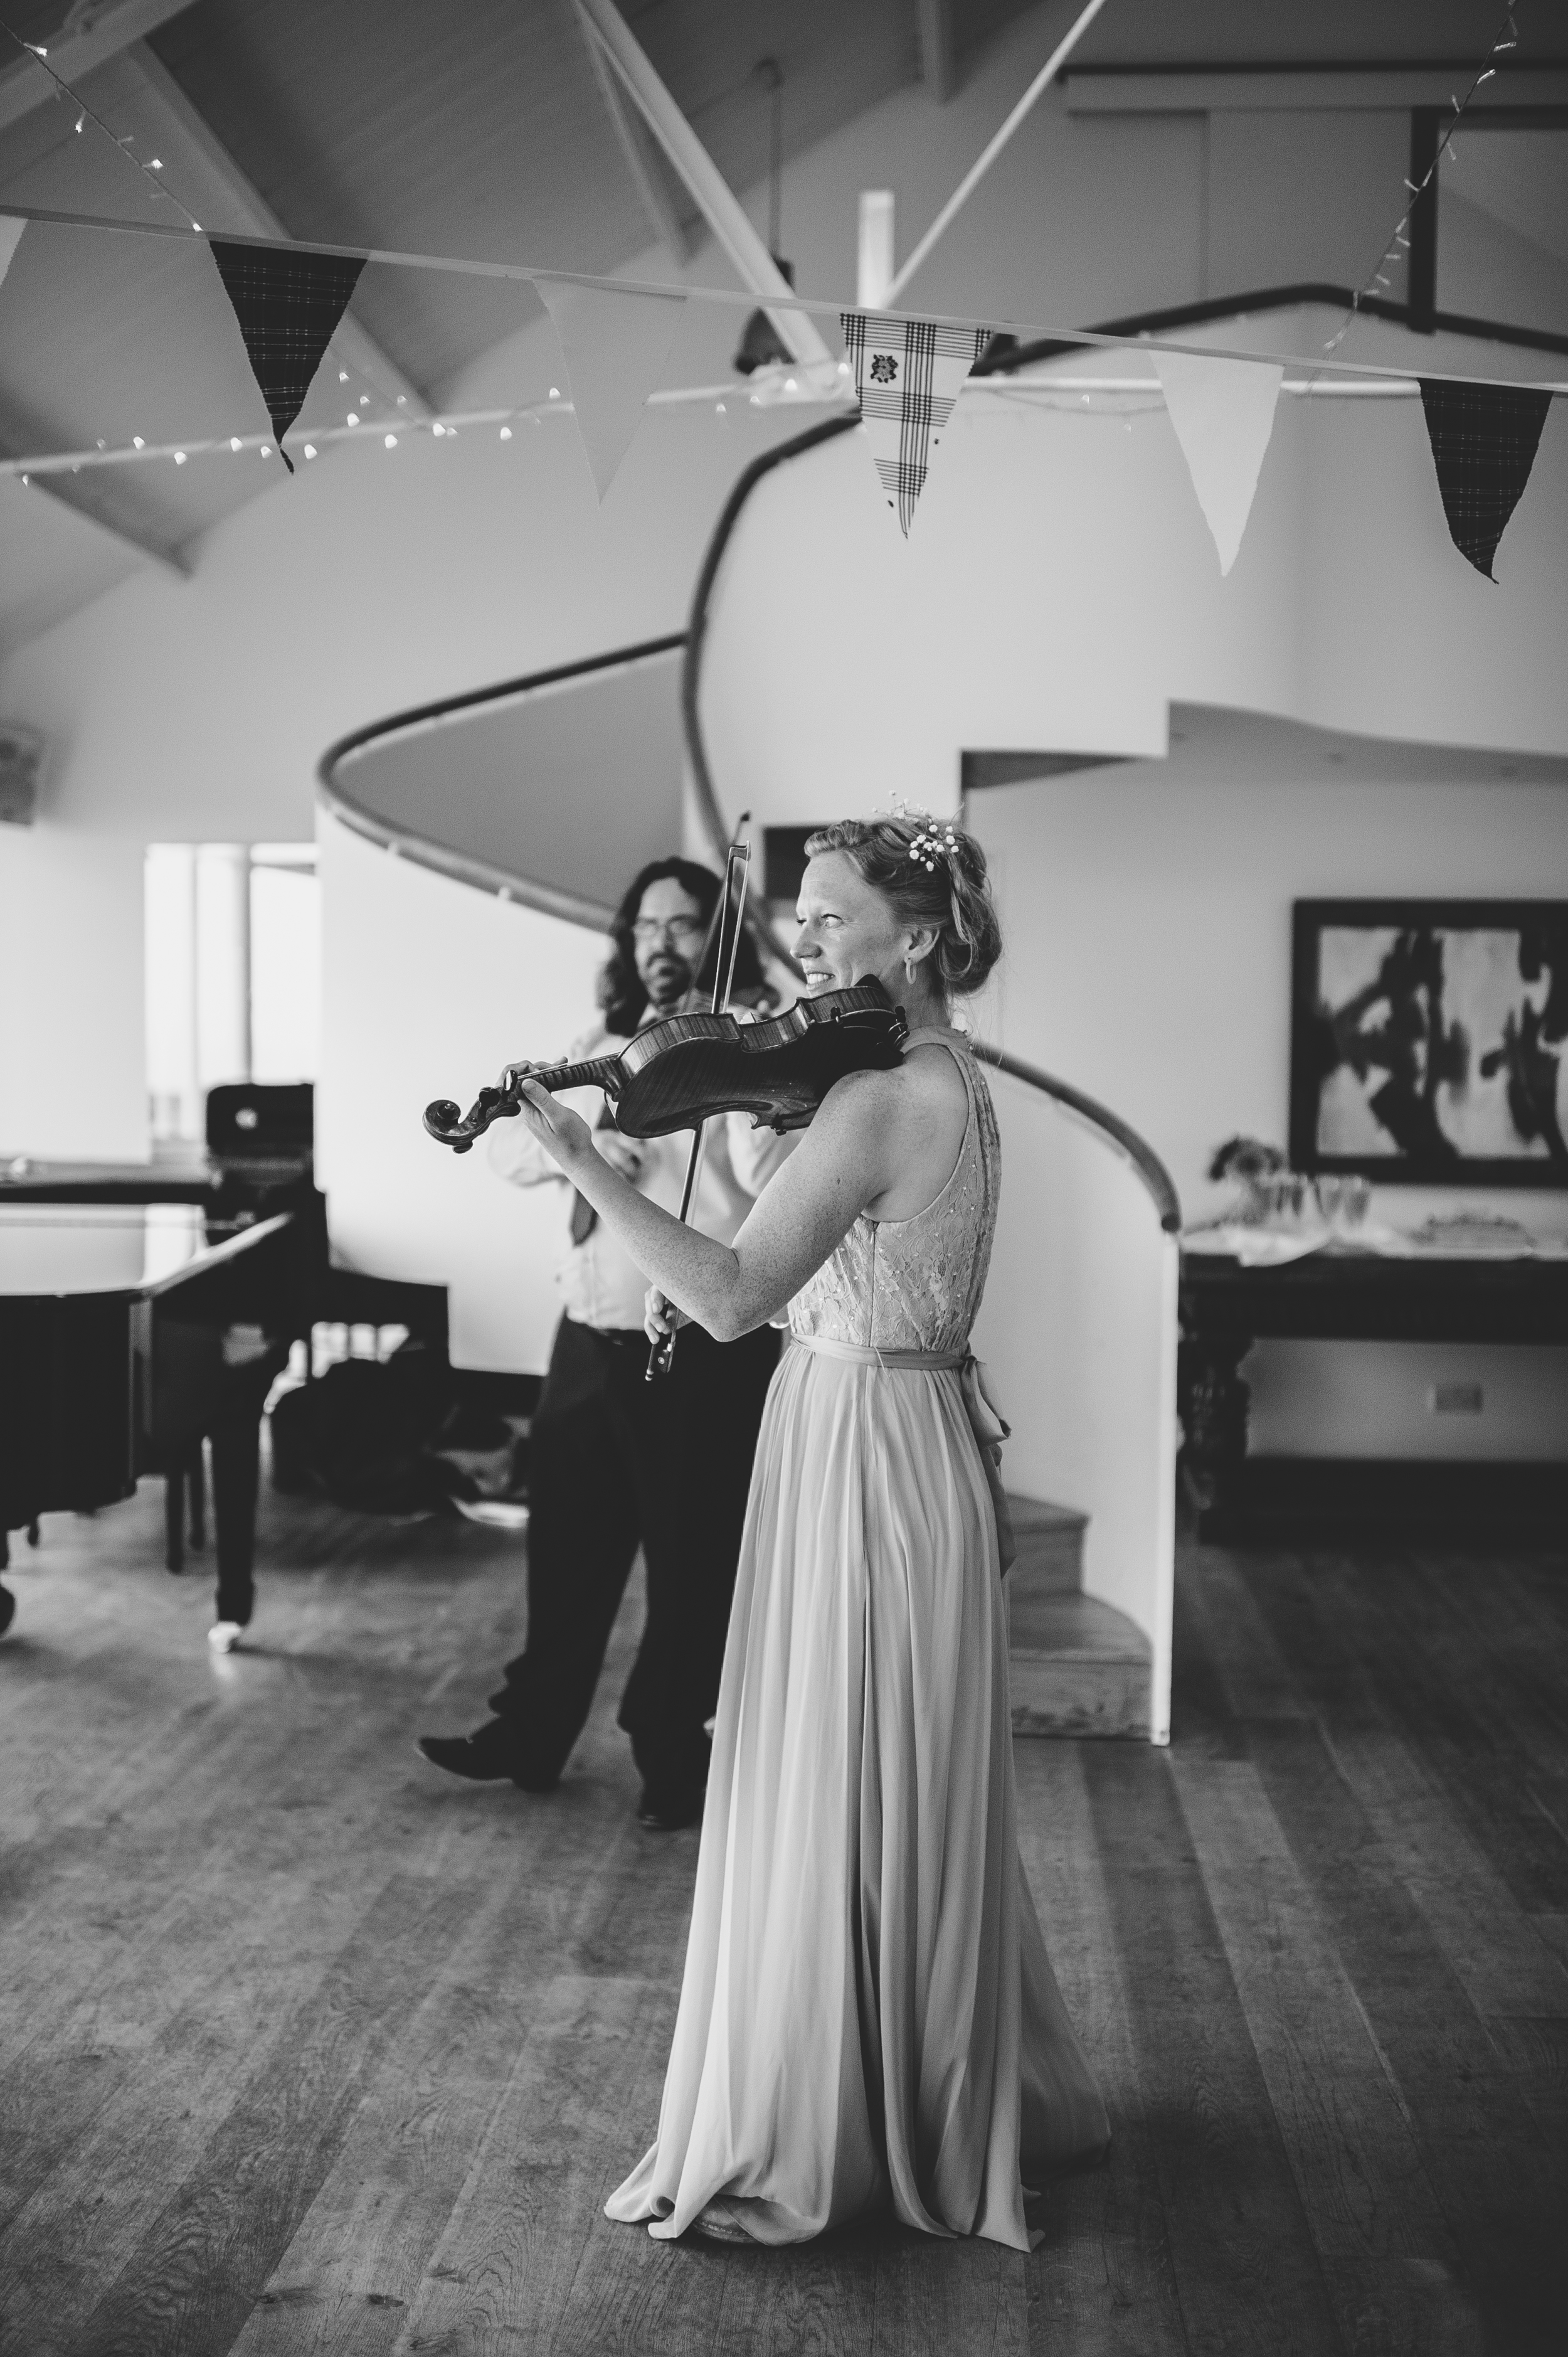 140-lisa-devine-photography-alternative-creative-wedding-photography-glasgow-crear-scotland-uk.JPG